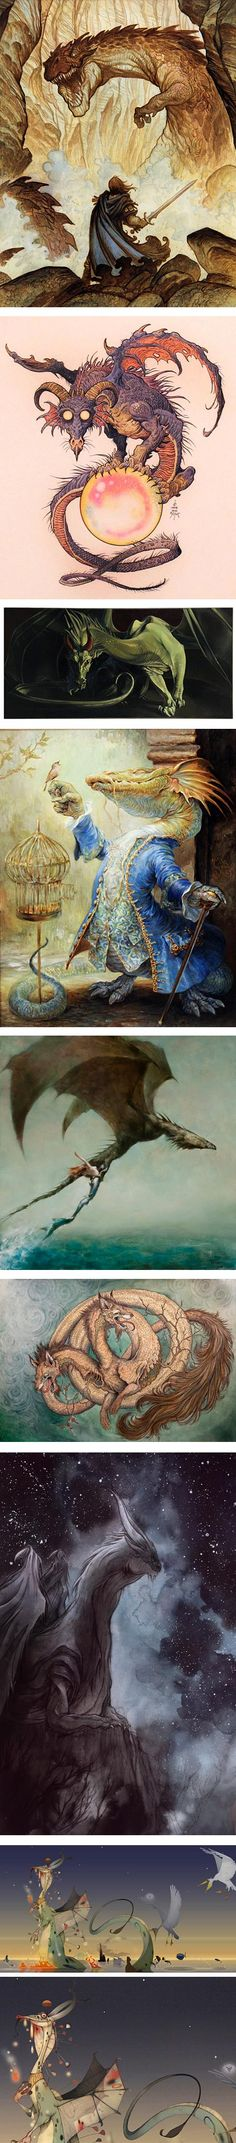 Breath of Embers: Art of Dragons at Gallery Nucleus - Justin Gerard, William Stout, Heather Theurer, Omar Rayyan, Eric Velhagen, Caitlin Hackett, Cory Godbey, Olivier Tossan